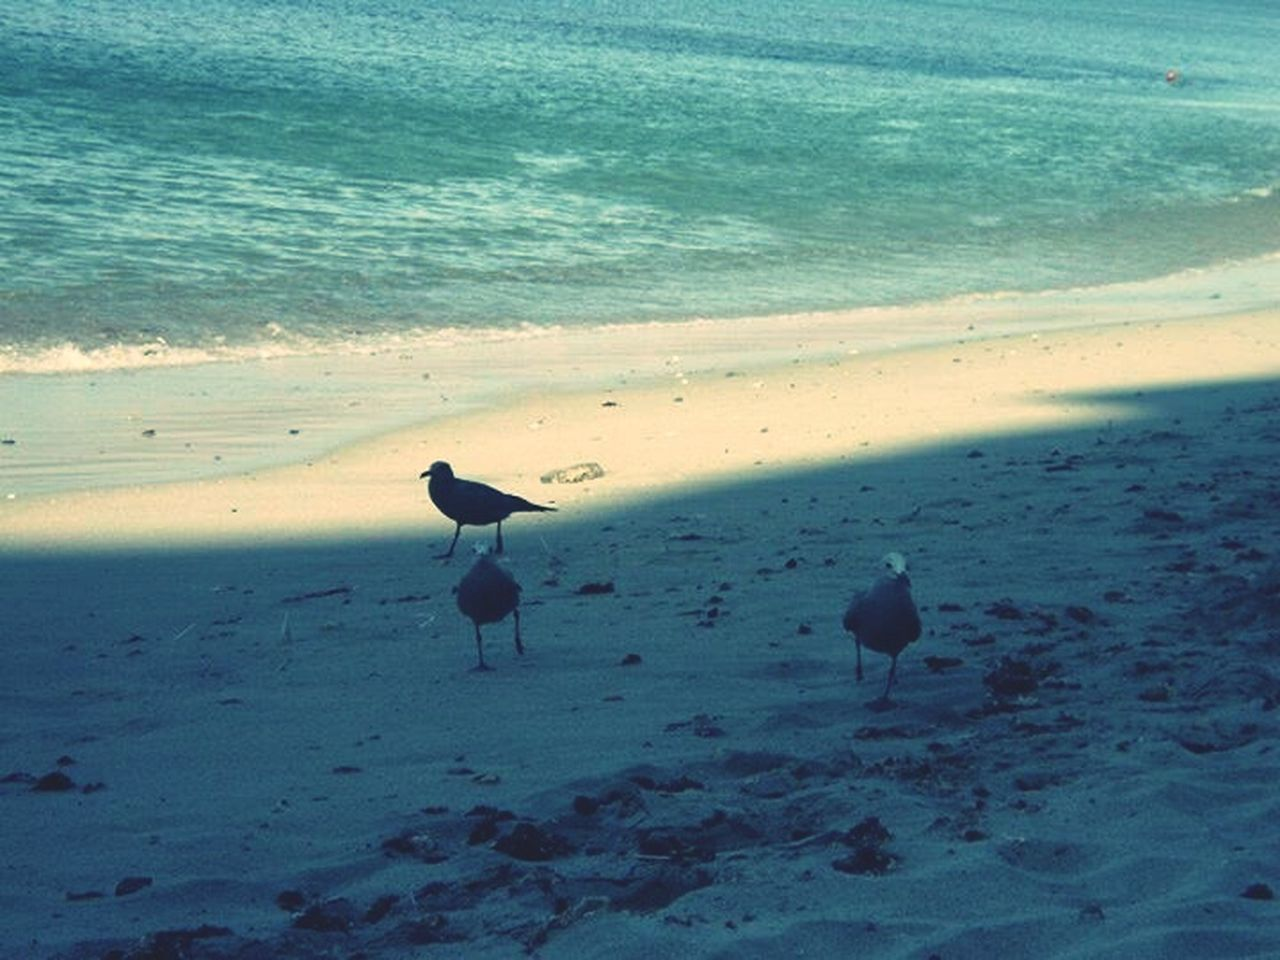 beach, sea, sand, water, nature, shore, animal themes, bird, animals in the wild, wave, beauty in nature, animal wildlife, no people, outdoors, day, scenics, horizon over water, perching